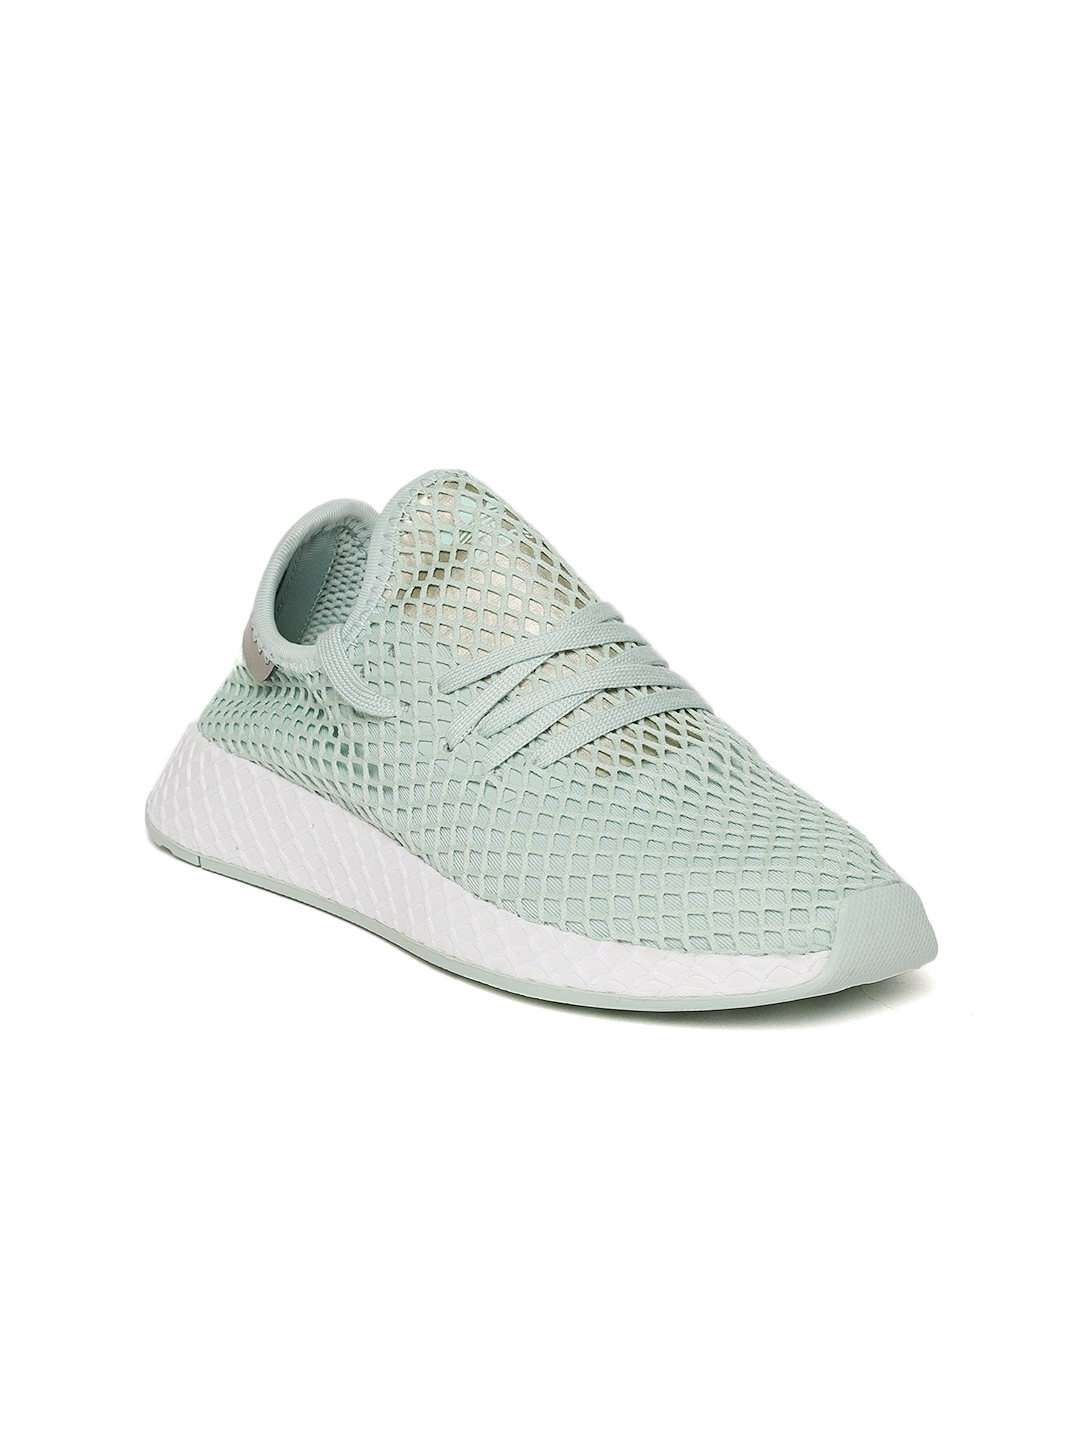 23c014bb87869 Buy Adidas Originals Women Mint Green DEERUPT Patterned Sneakers ...